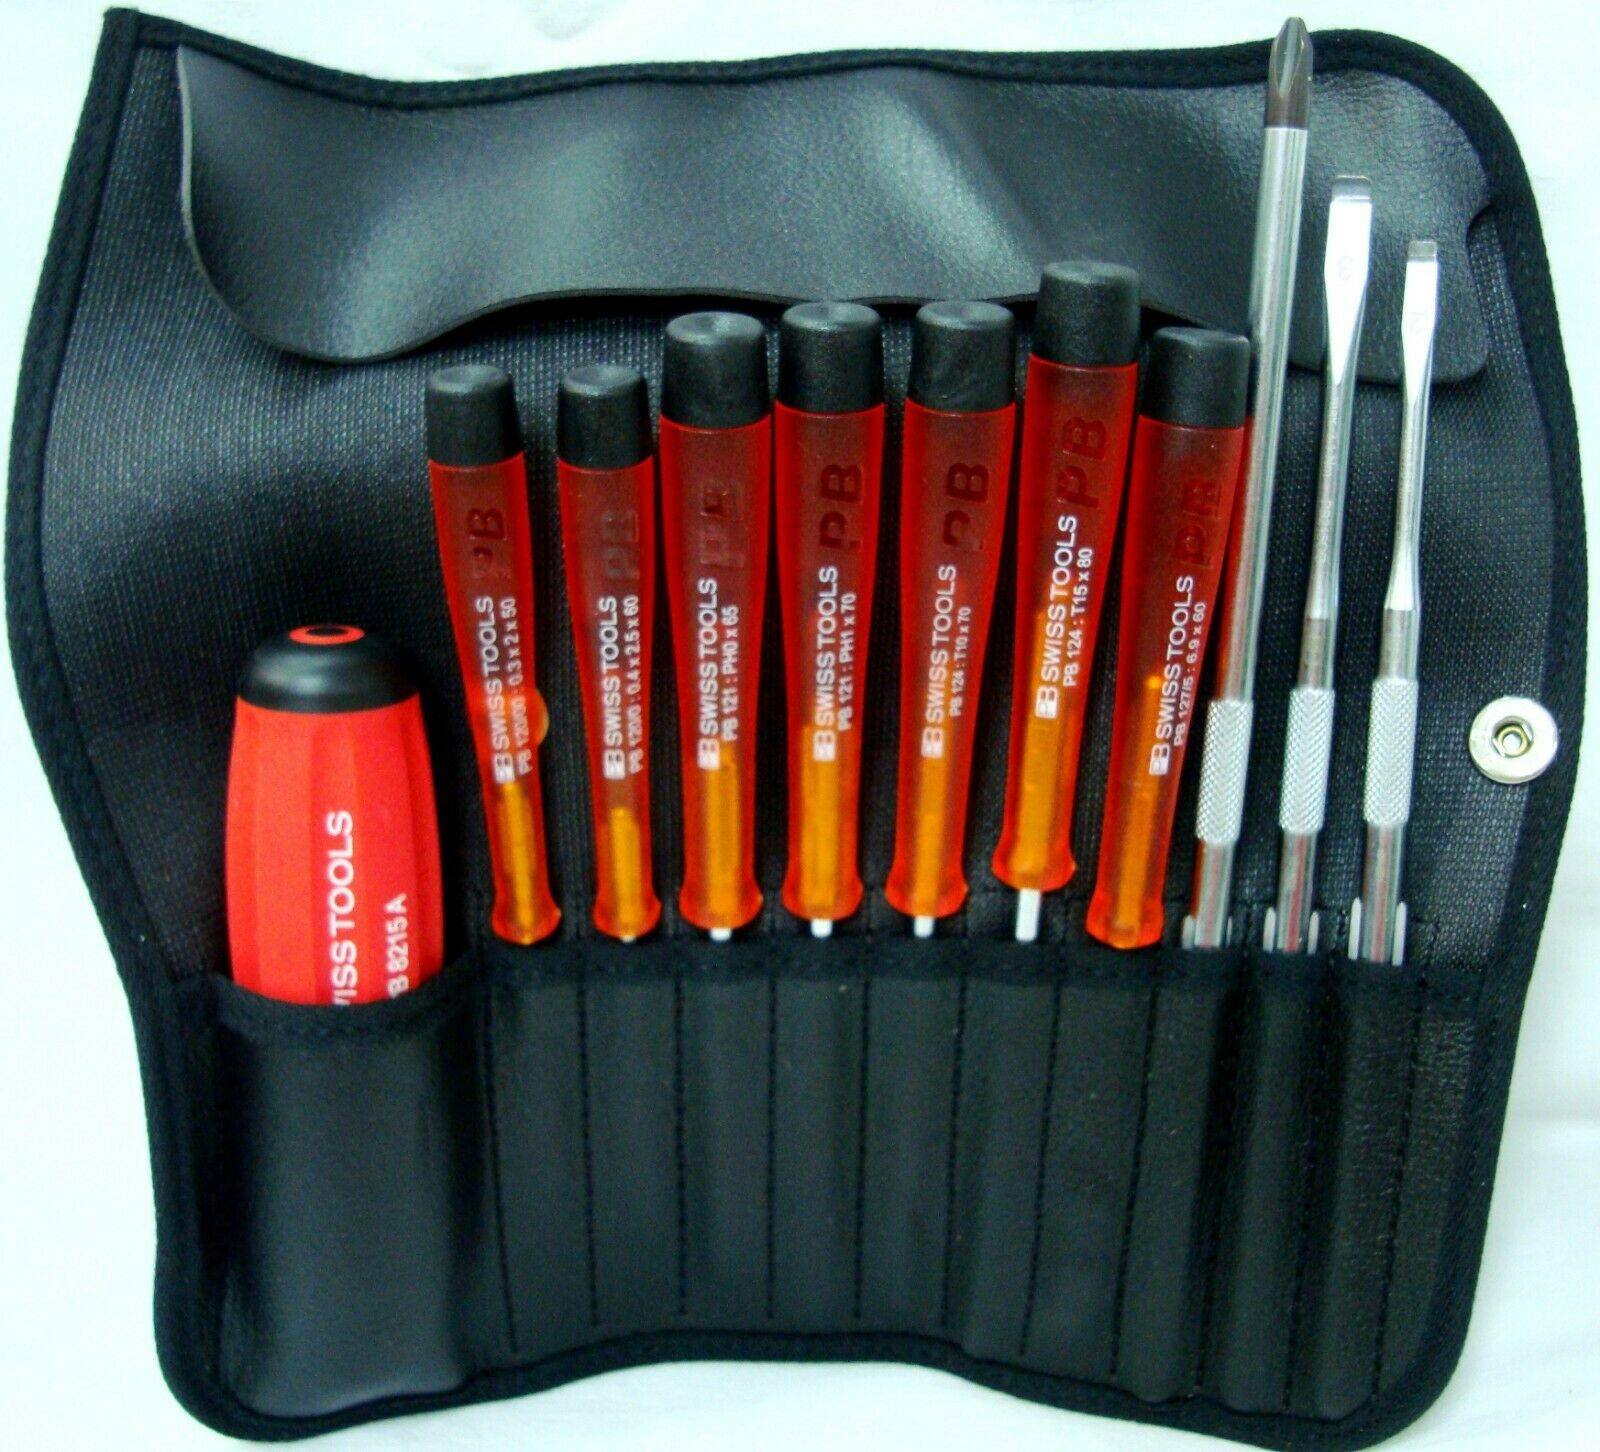 PB 8220 Prof. Screwdriver Exchangeable Blades Set for Electronics & Computer